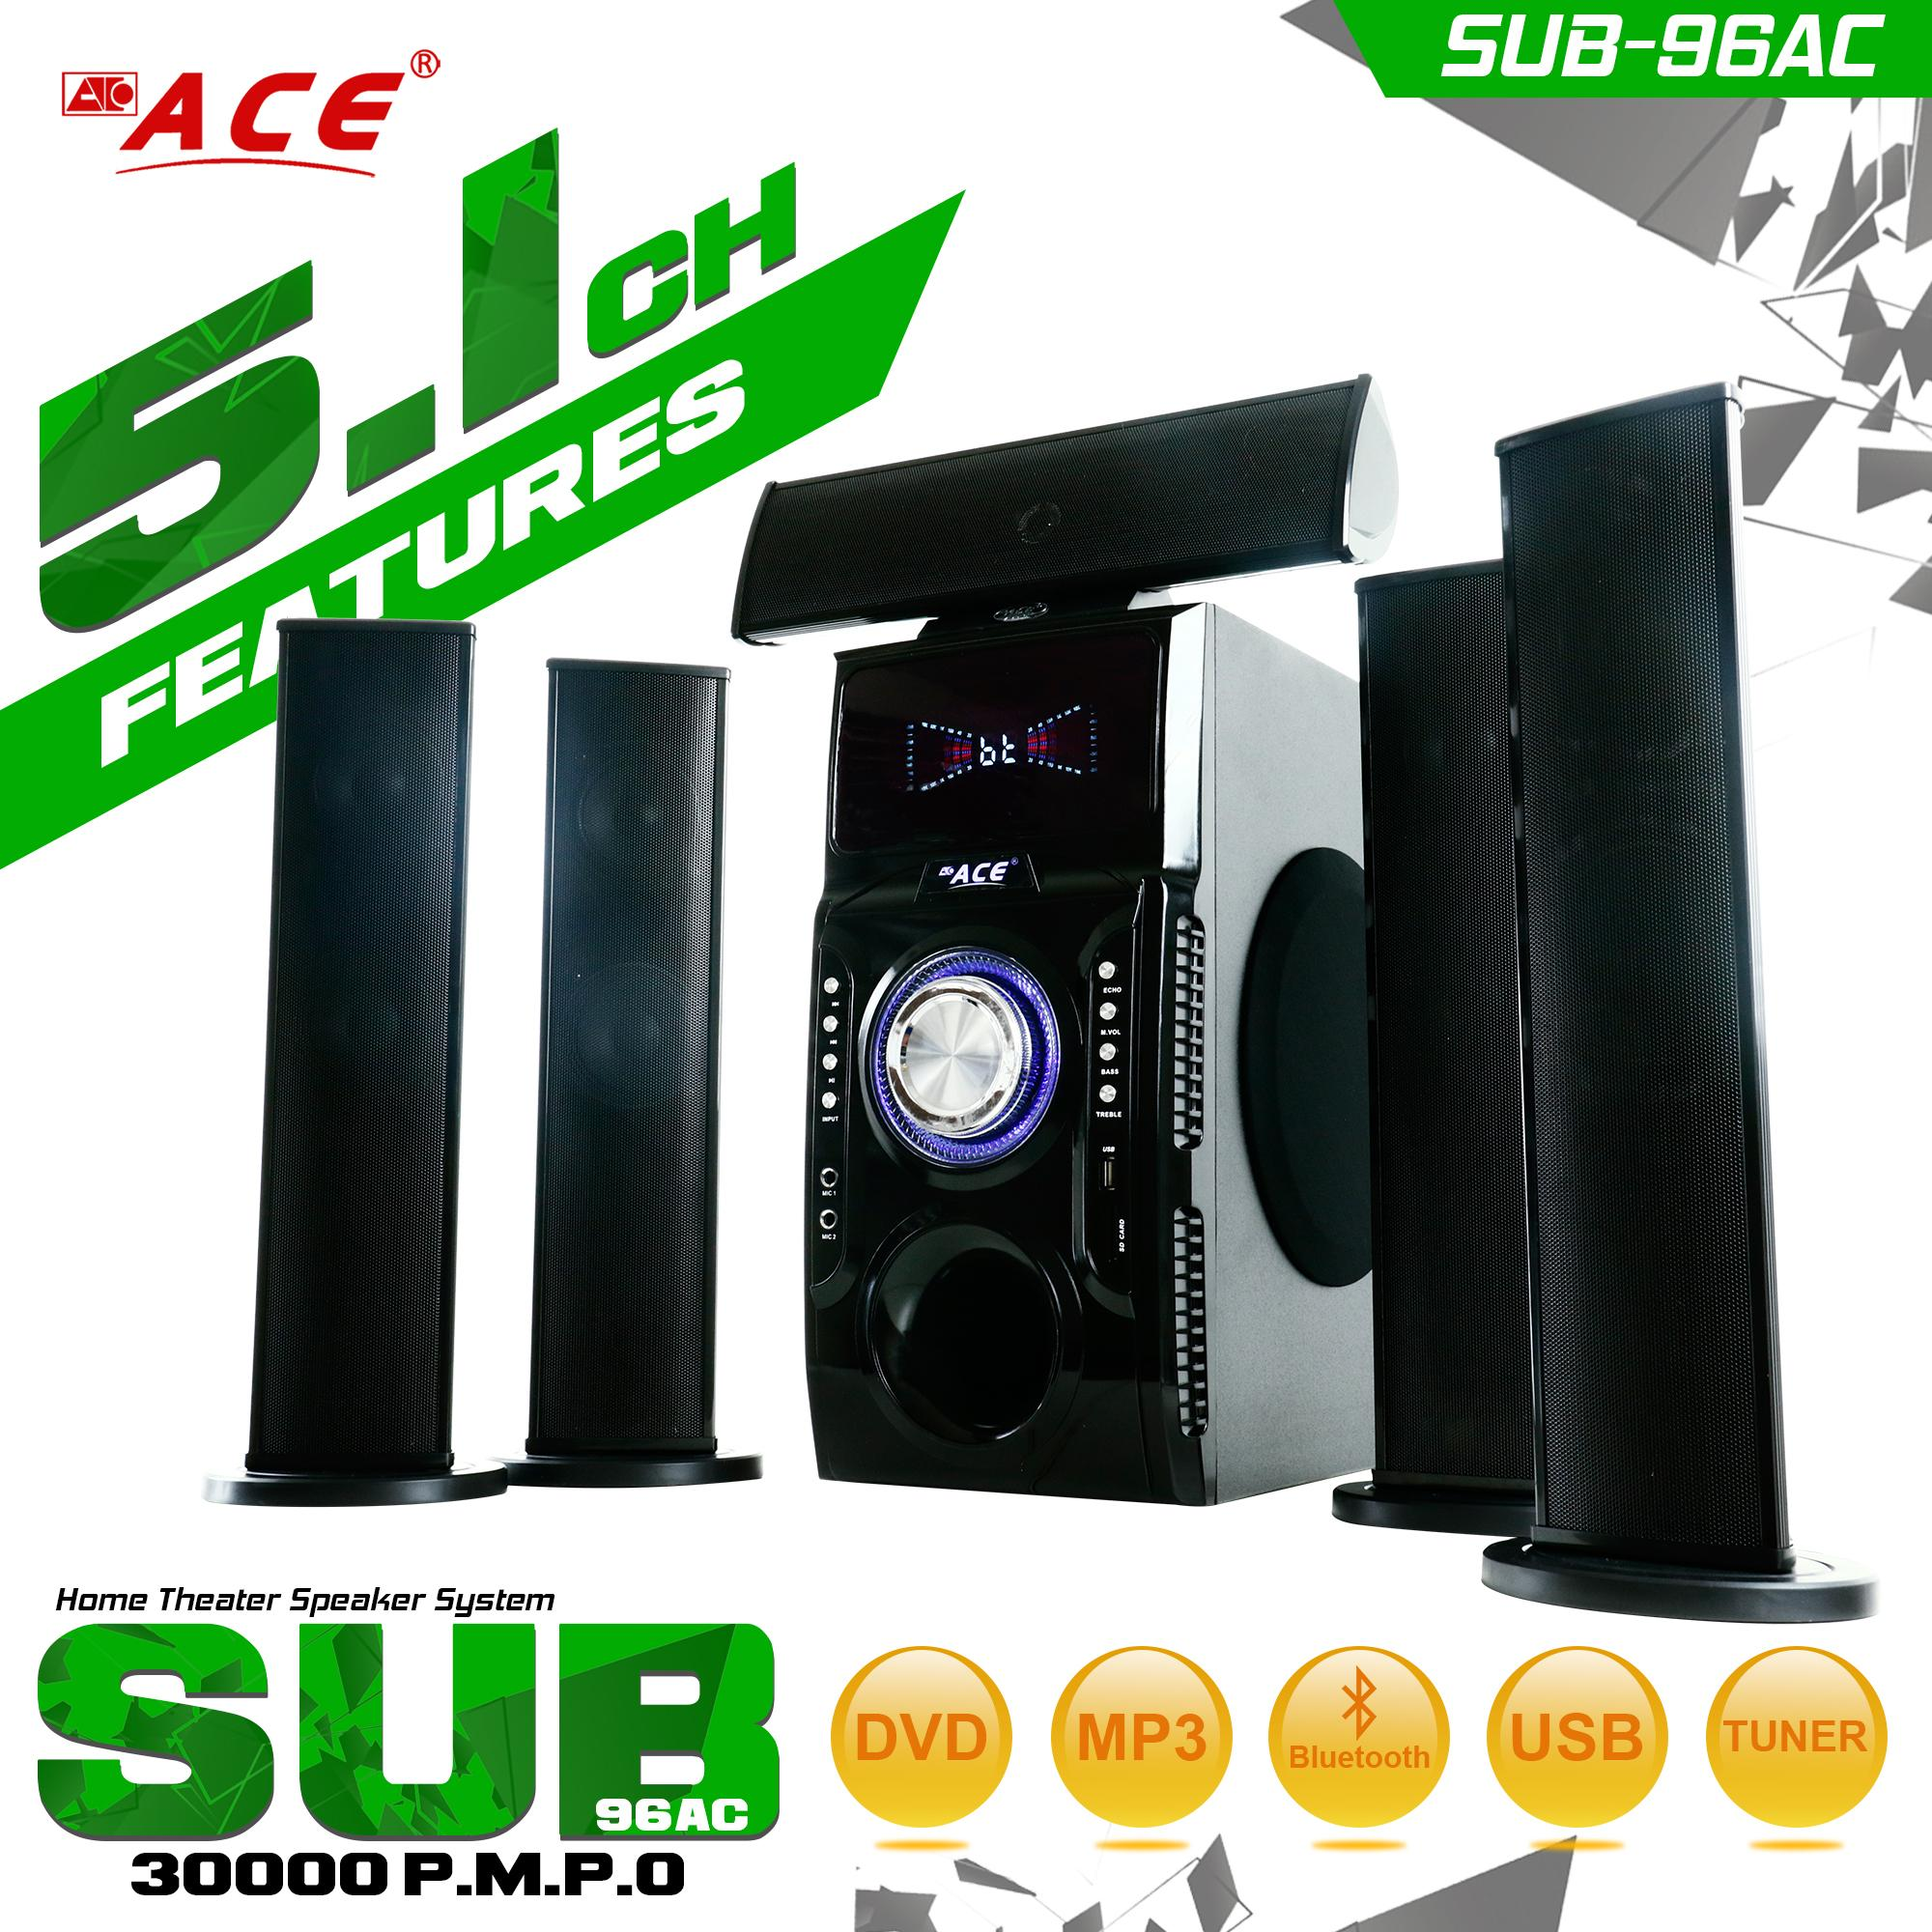 Subwoofer For Sale Speaker Prices Brands Specs In Tags Circuit Tda2030 Pcb Layout Ace Sub 96ac 51ch Multimedia System